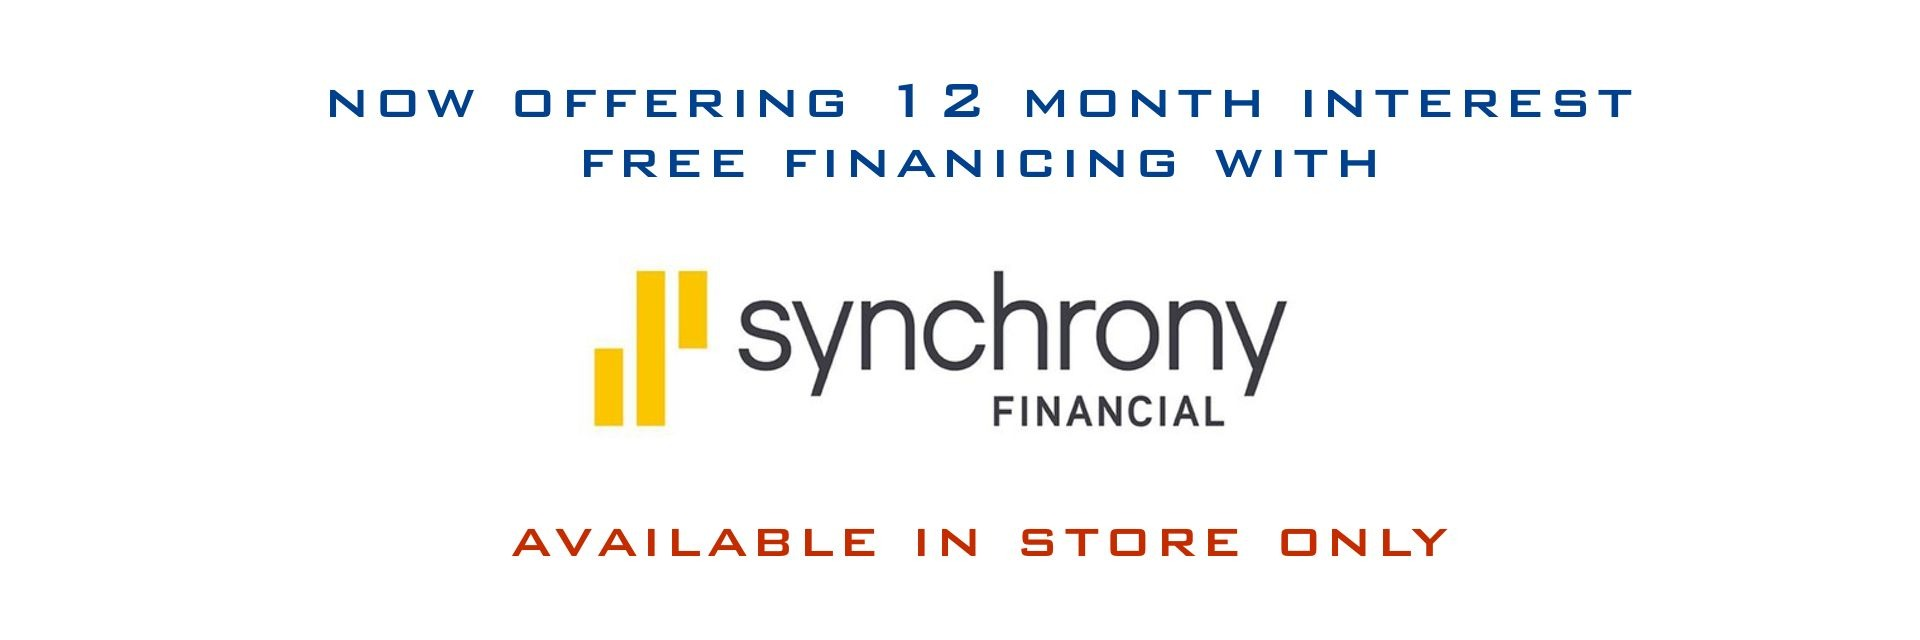 12 Month Interest Free Financing With Synchrony At Bicycle Pro Shop